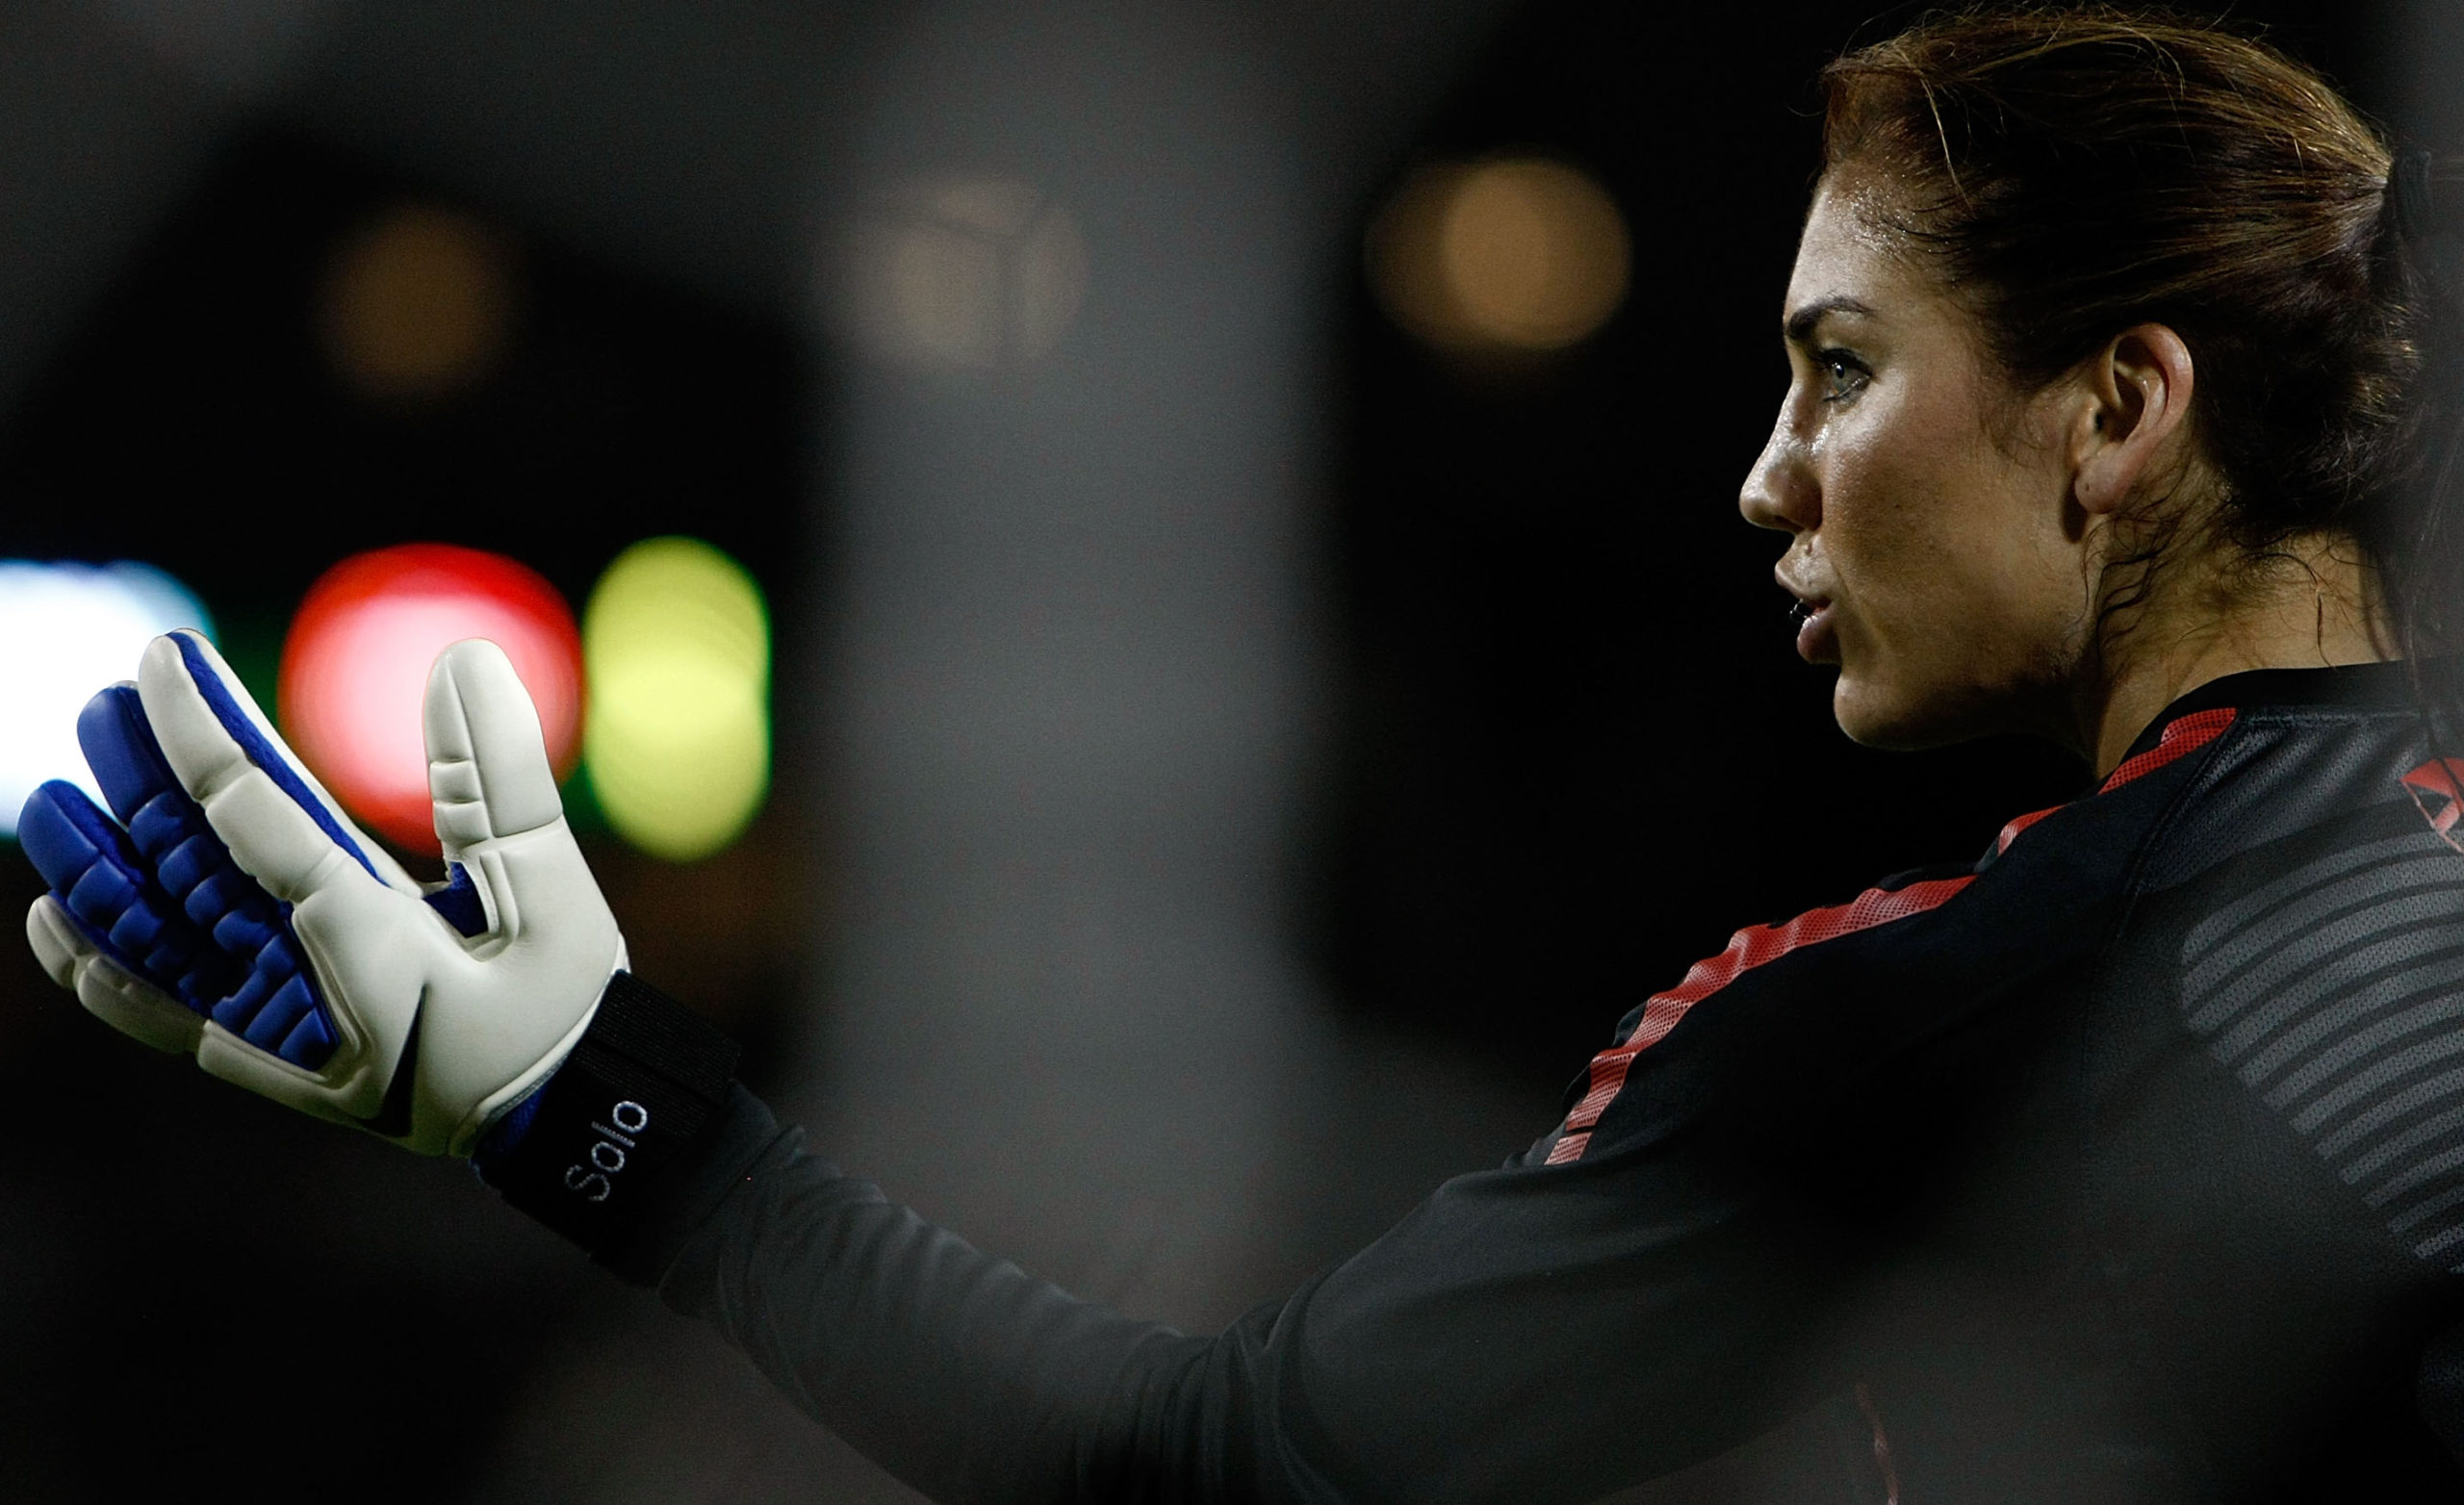 PORTLAND, OR - SEPTEMBER 22:  Goal Keeper Hope Solo #1 of the United States warms up against Canada during the final match of the Celebration Series on September 22, 2011 at Jeld-Wen Field in Portland, Oregon.  (Photo by Jonathan Ferrey/Getty Images)